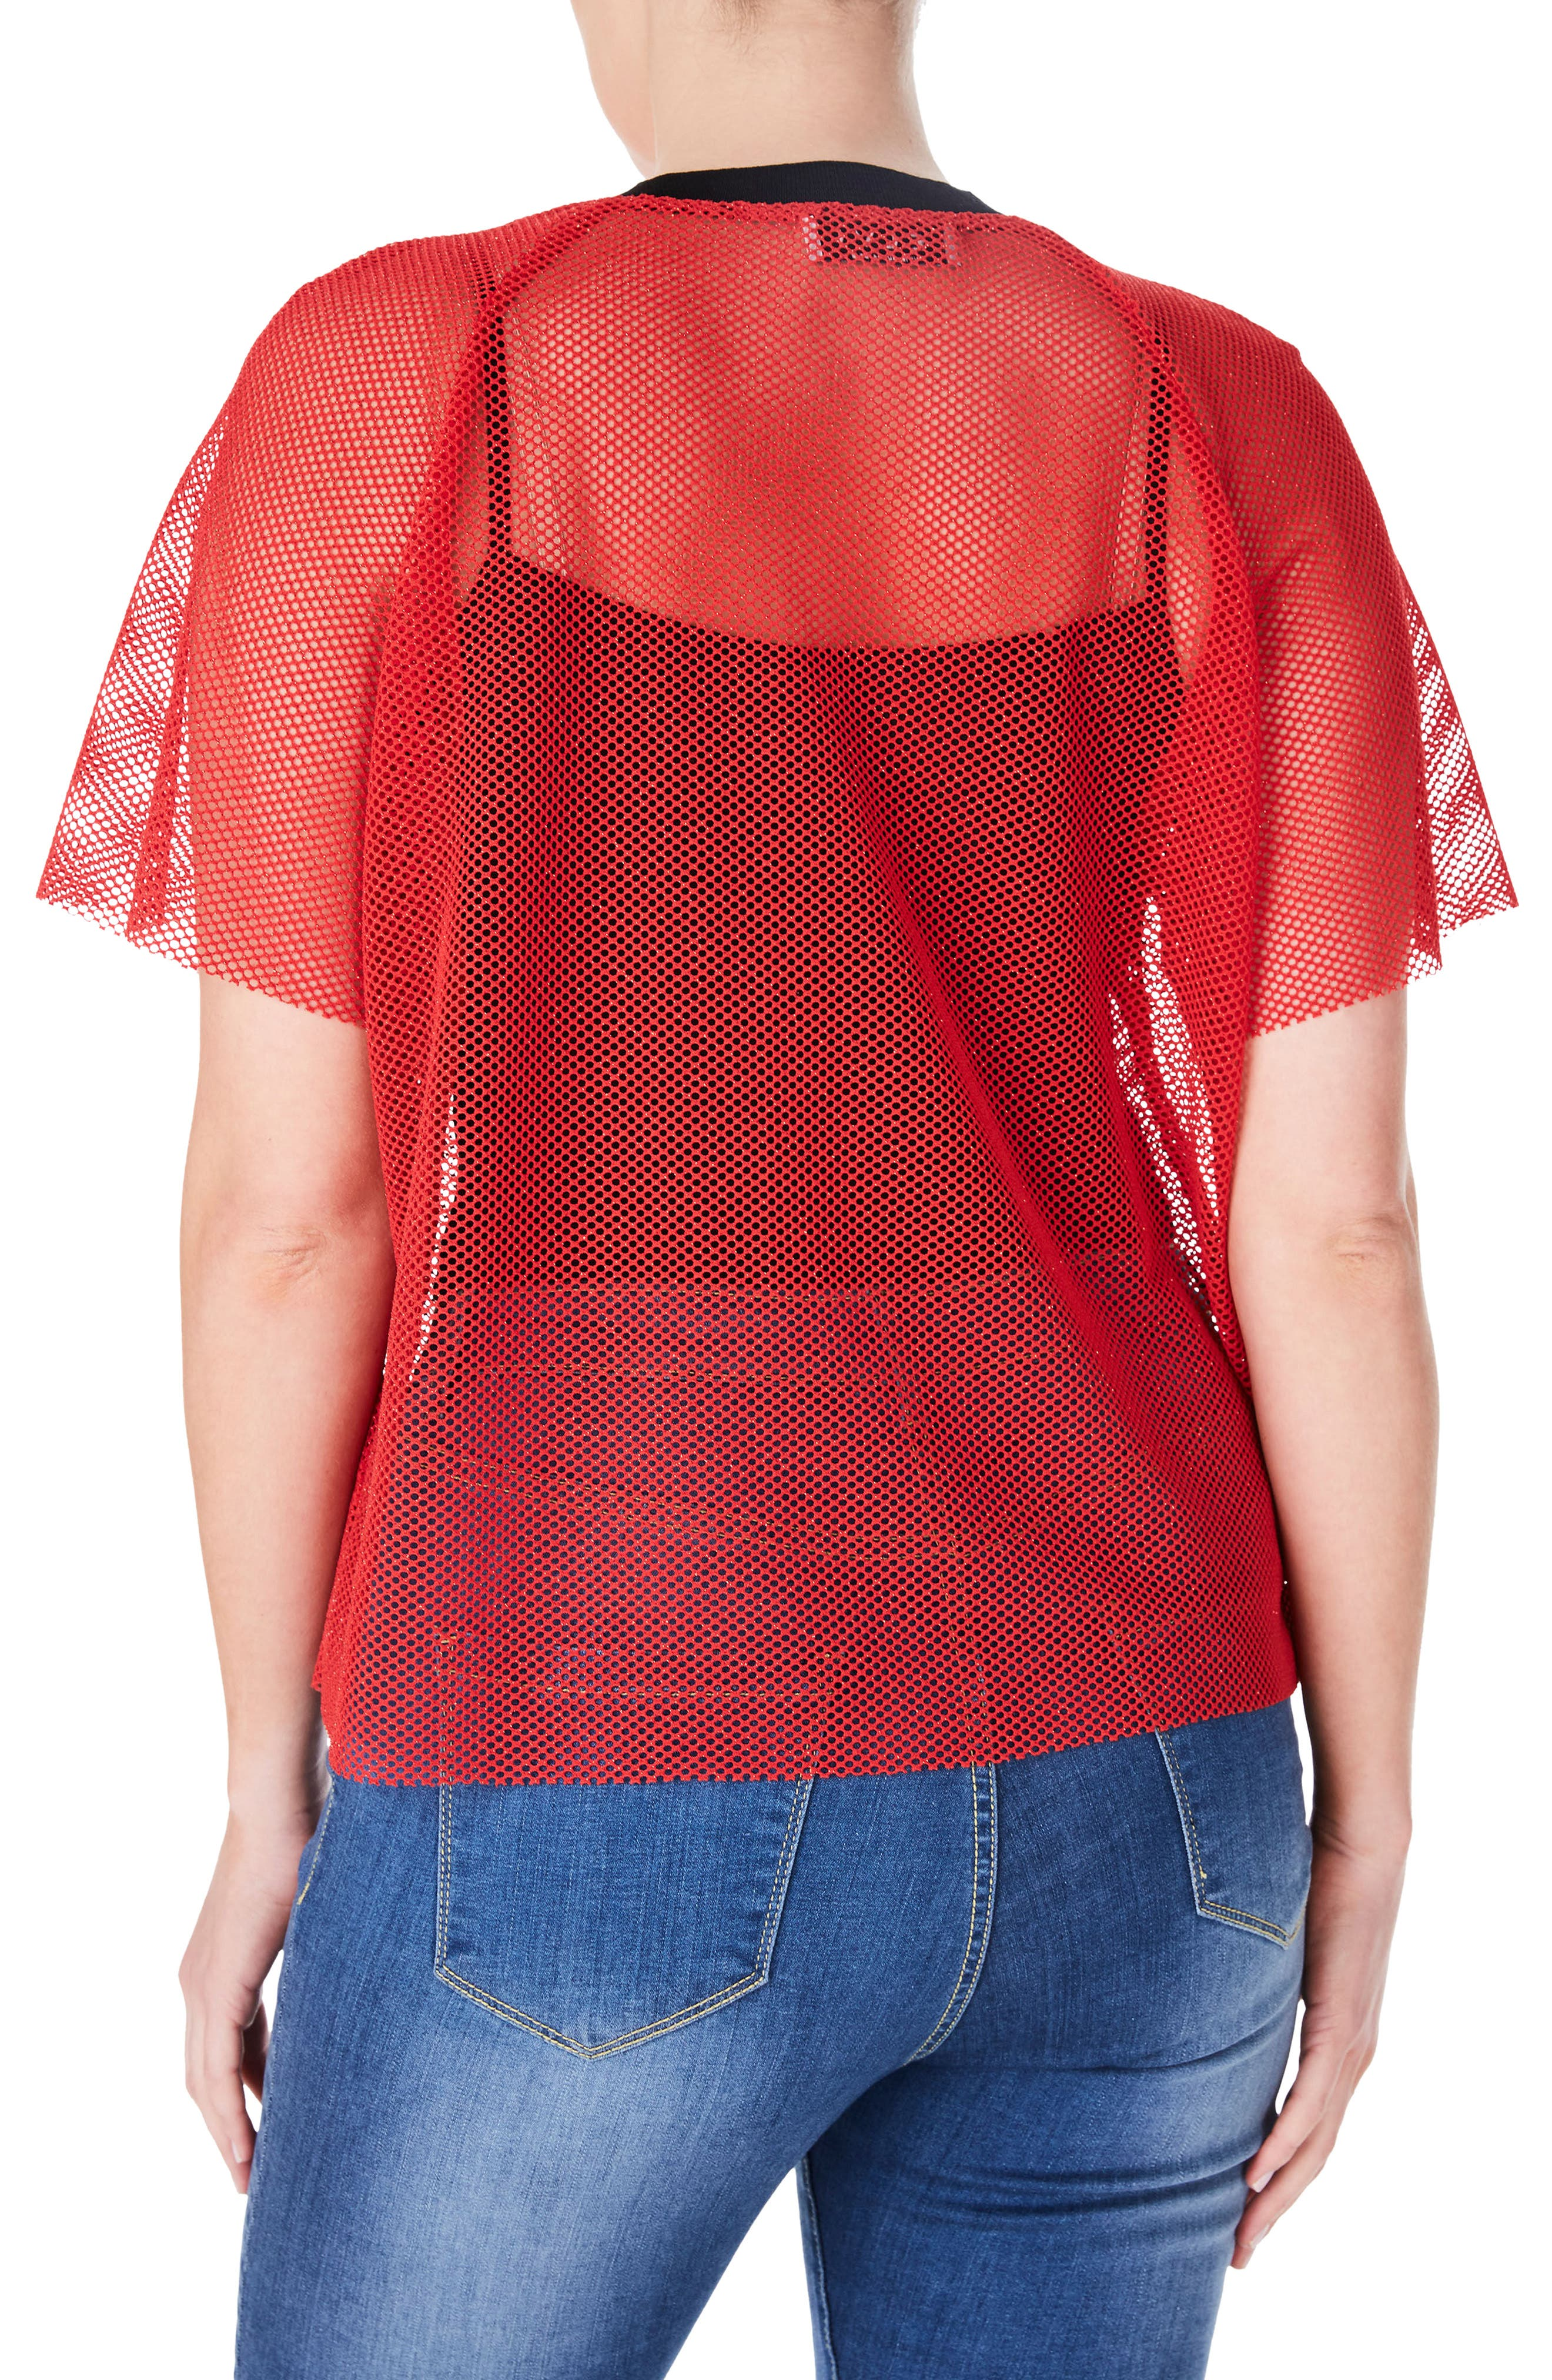 Fishnet Zip Front Top,                             Alternate thumbnail 2, color,                             Red